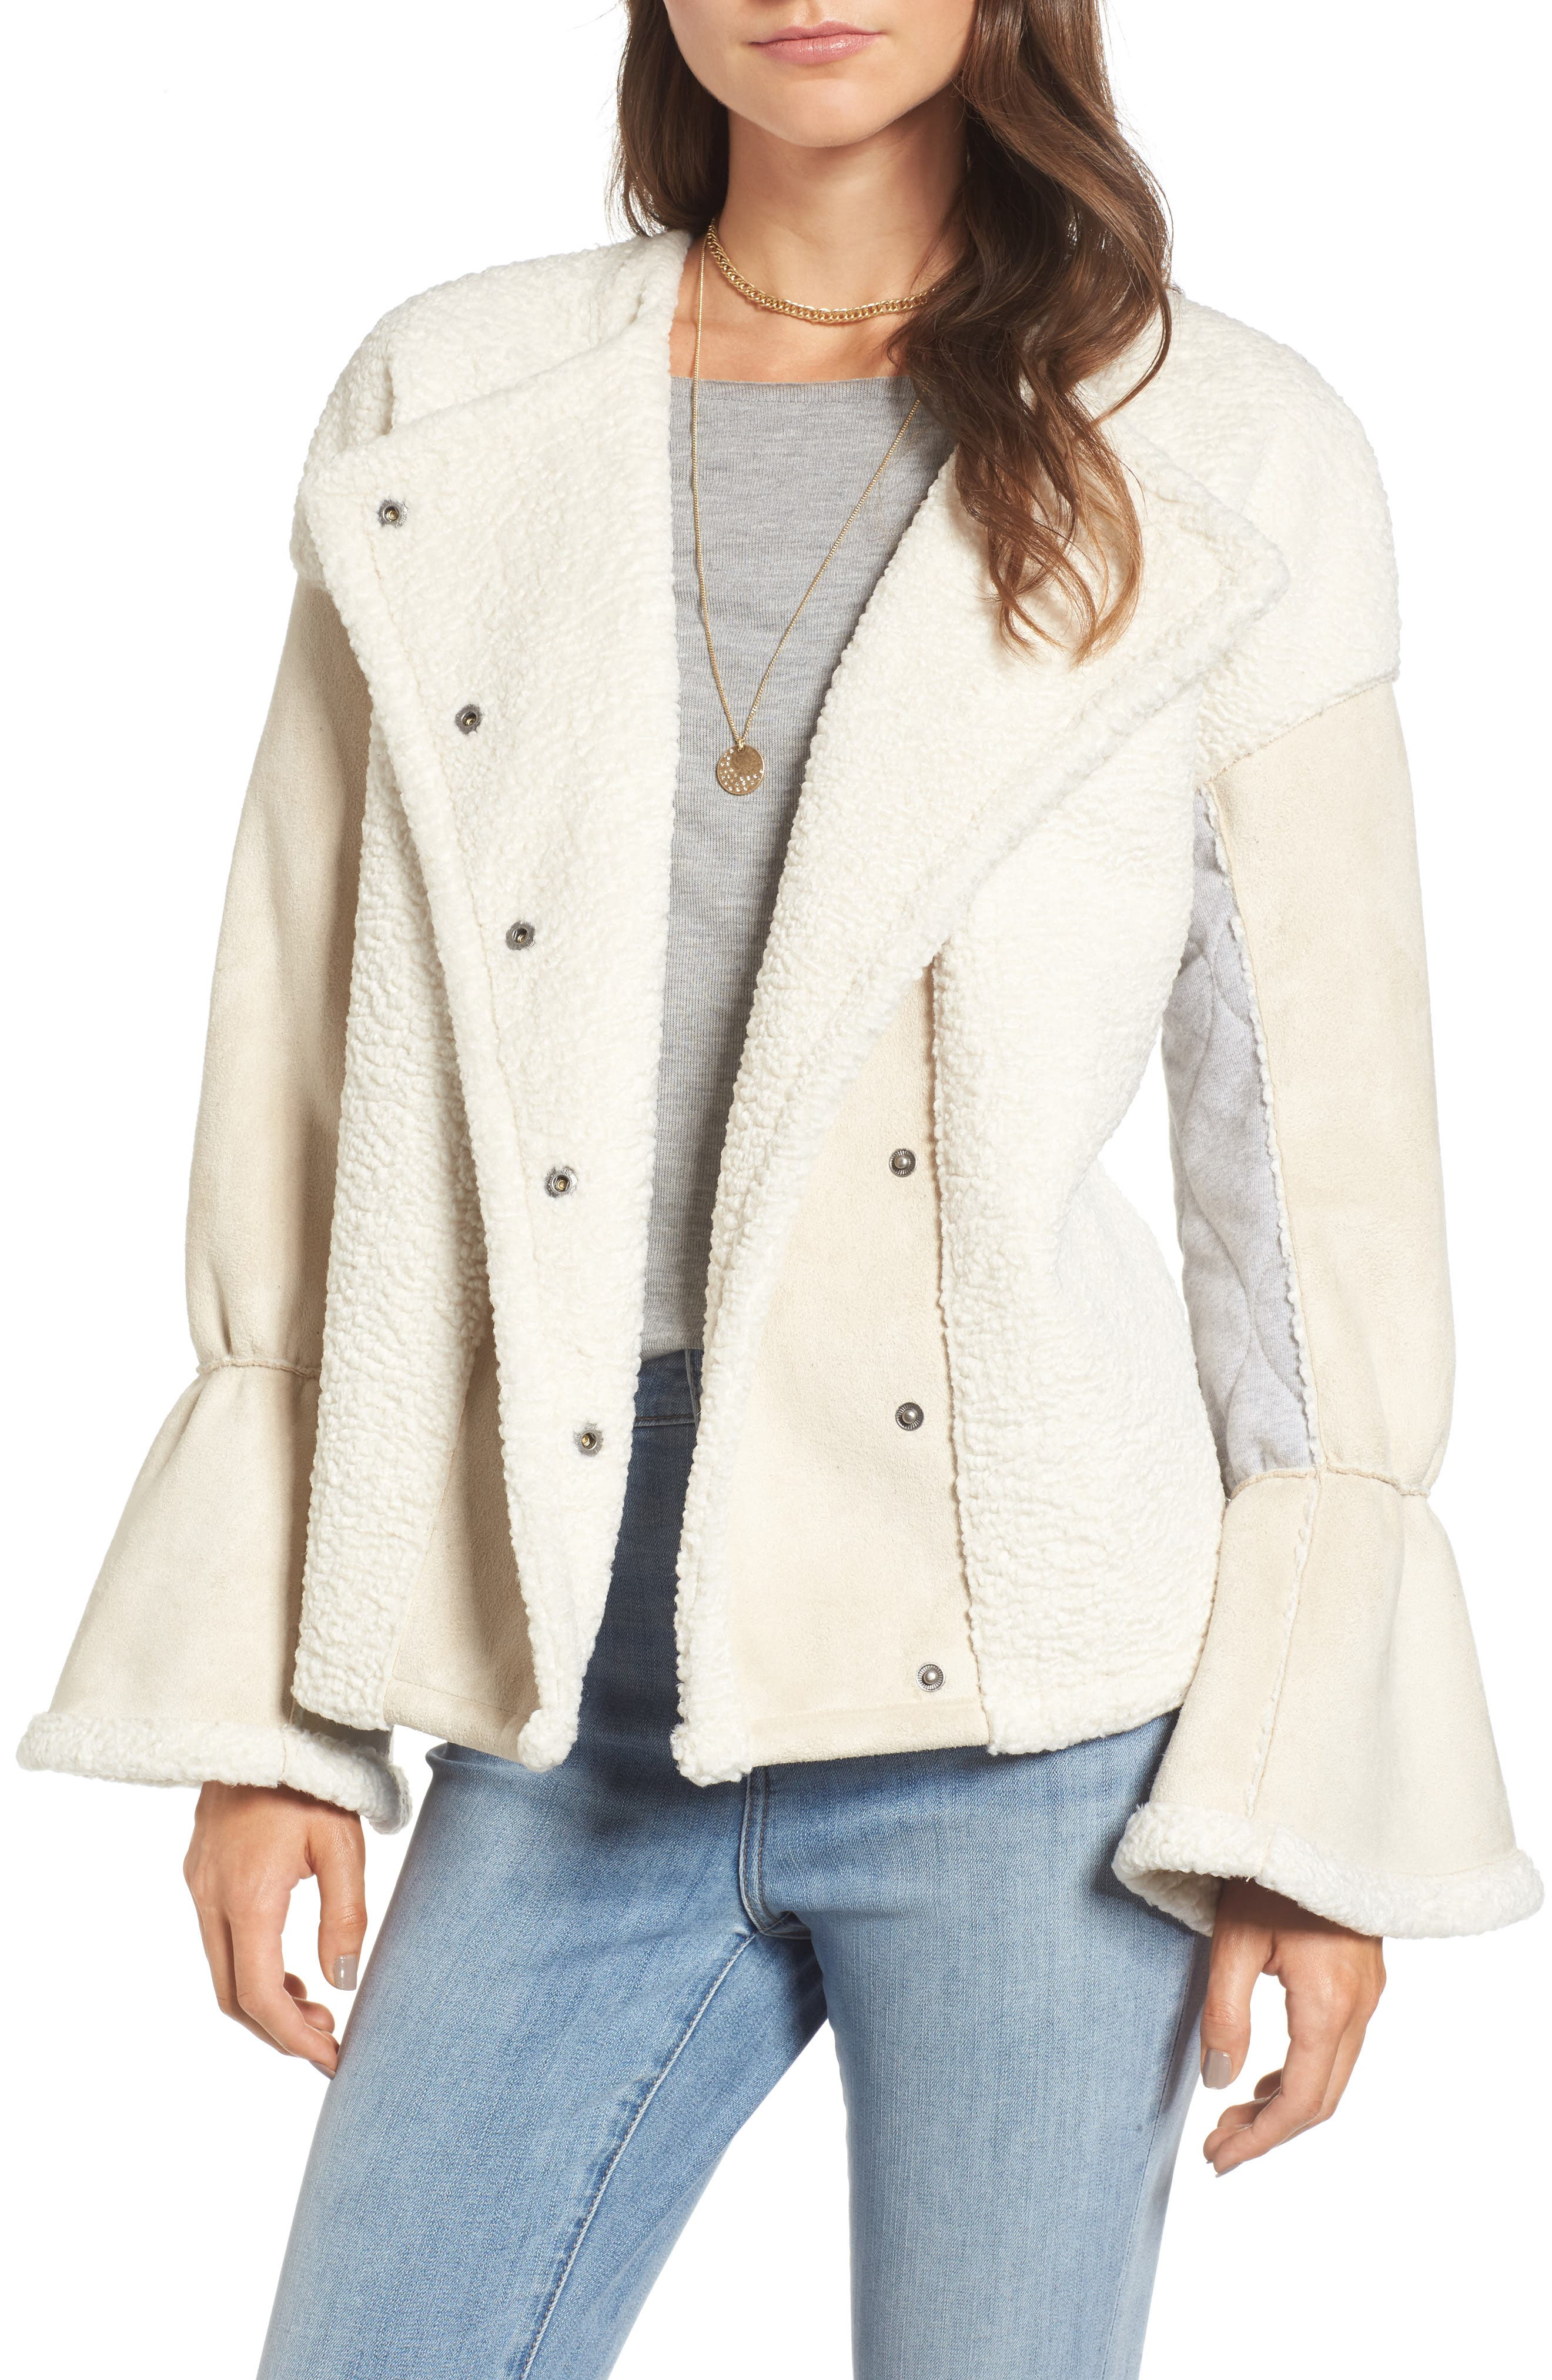 x Something Navy Bell Sleeve Faux Shearling Jacket,                             Main thumbnail 1, color,                             Ivory Combo